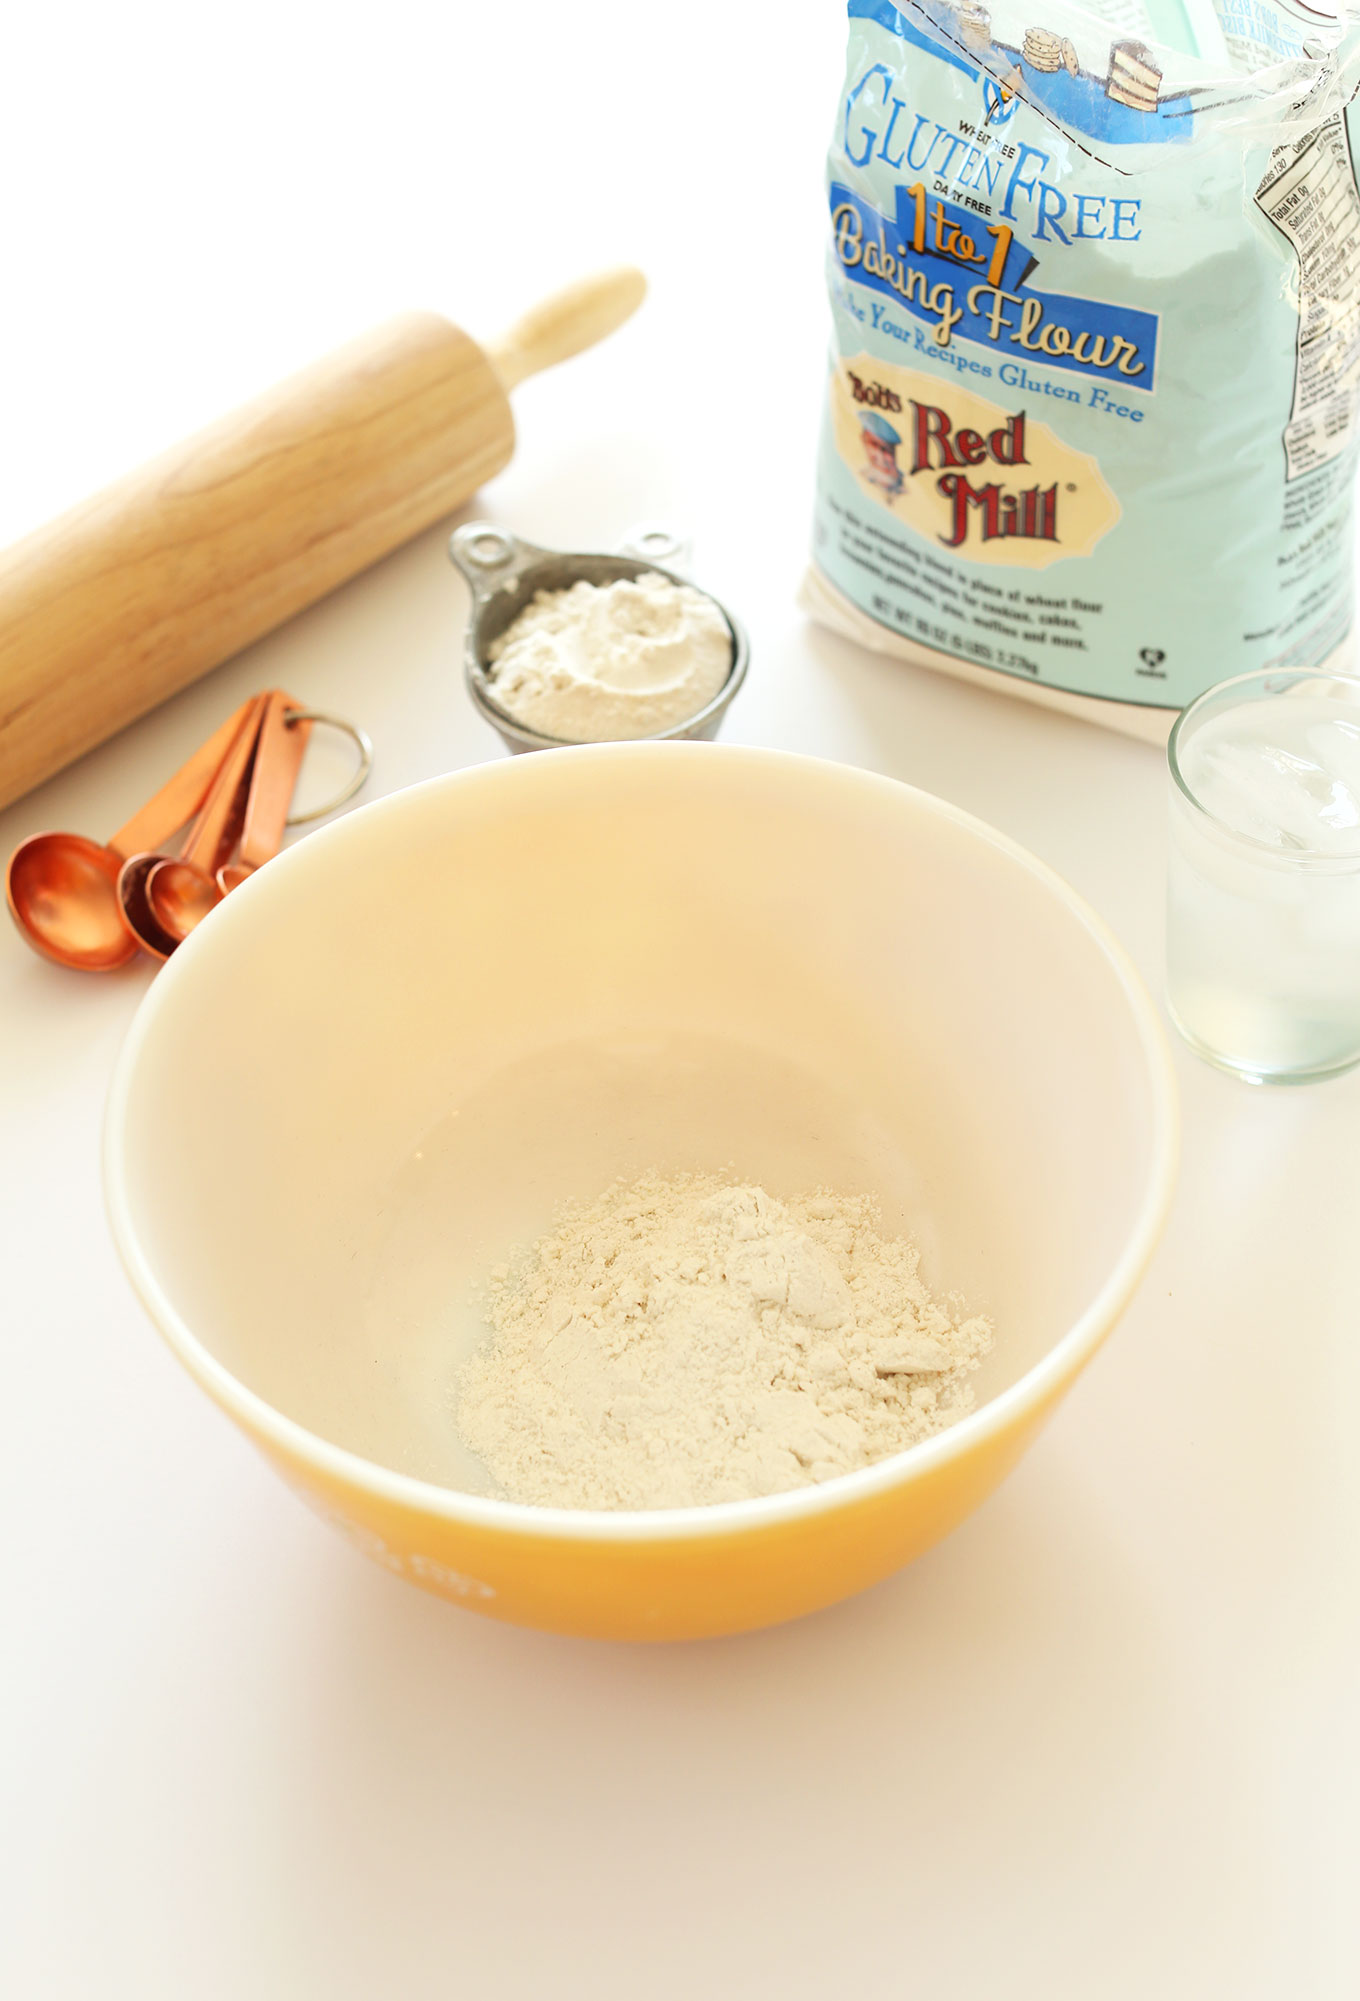 Bowl with gf flour for making homemade gluten-free pie crust